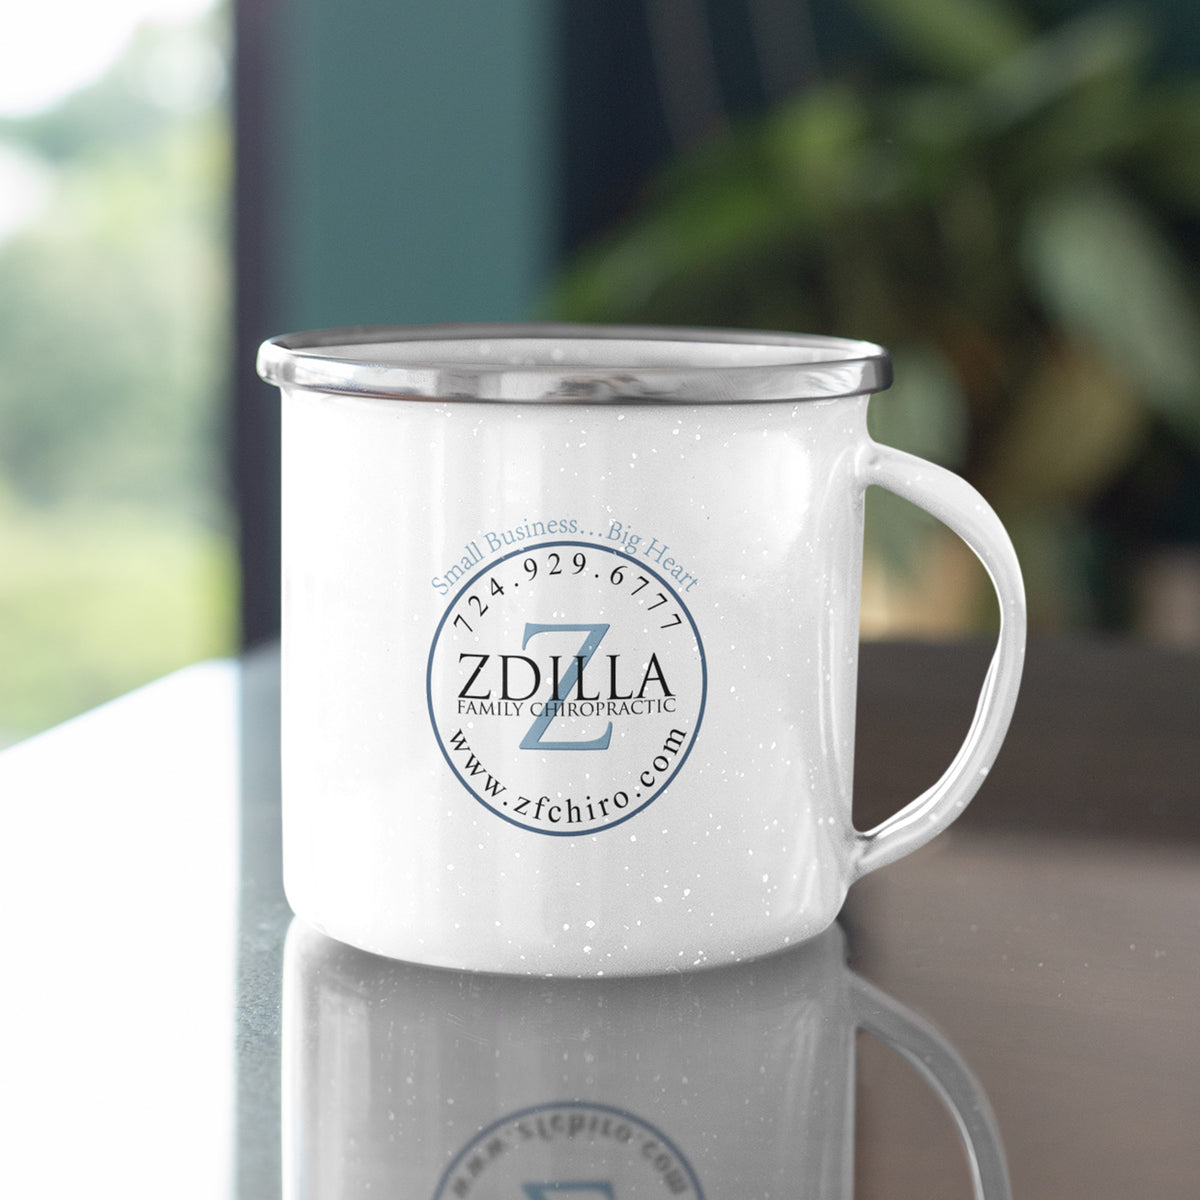 Zdilla Family Chiropractic We Support PA Camping Mug